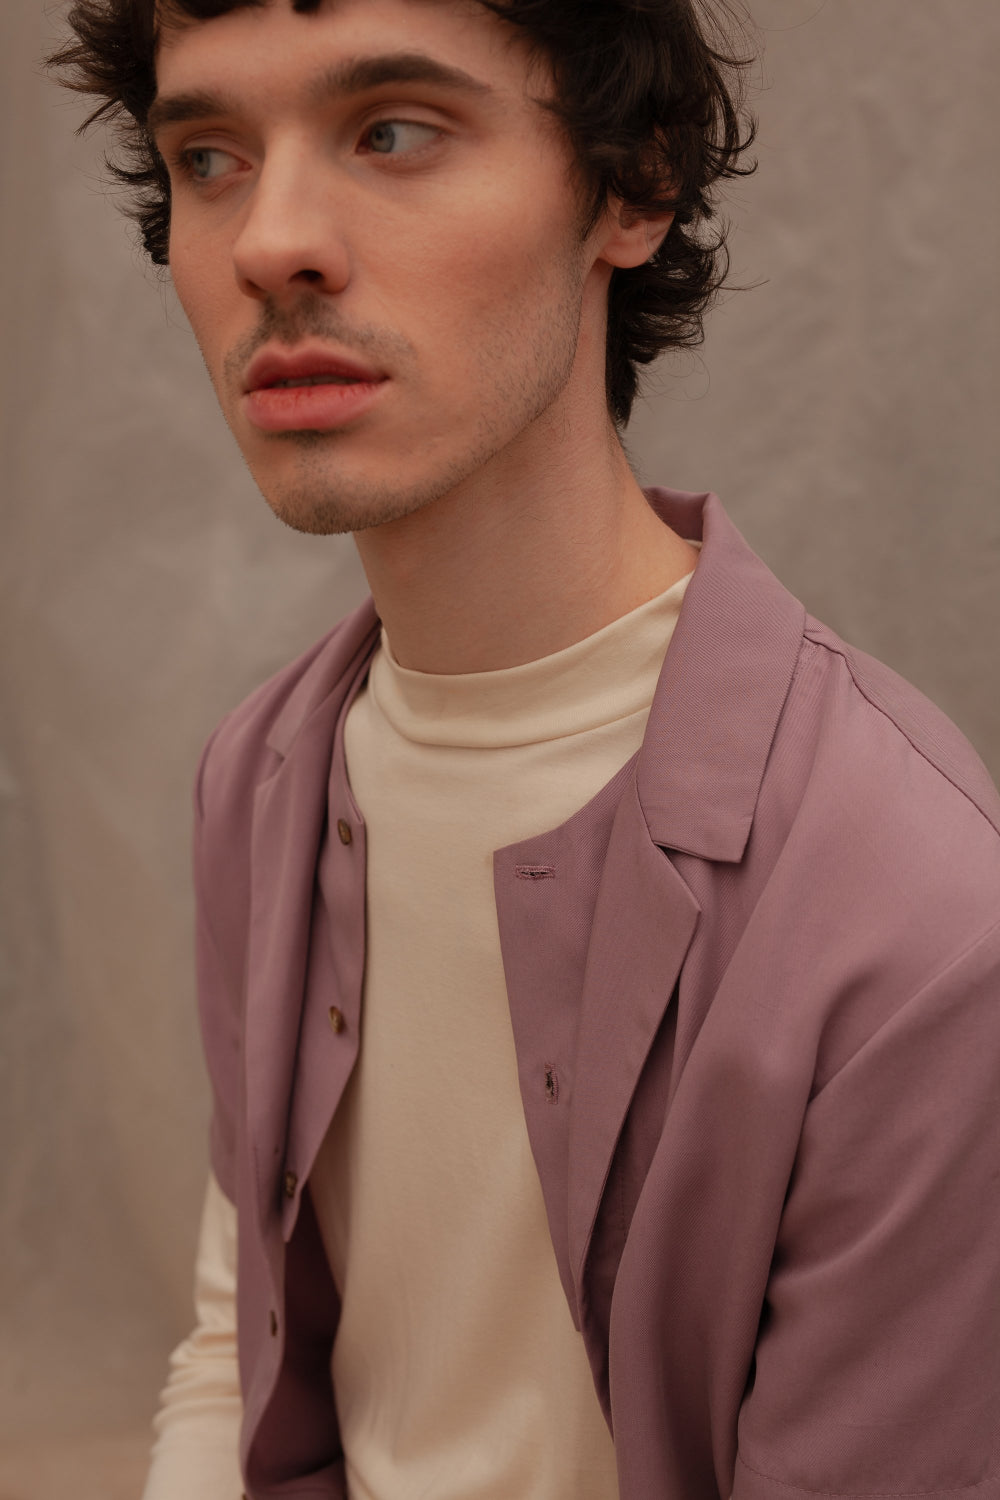 Eve mauve shirt genderless clothing montreal veri